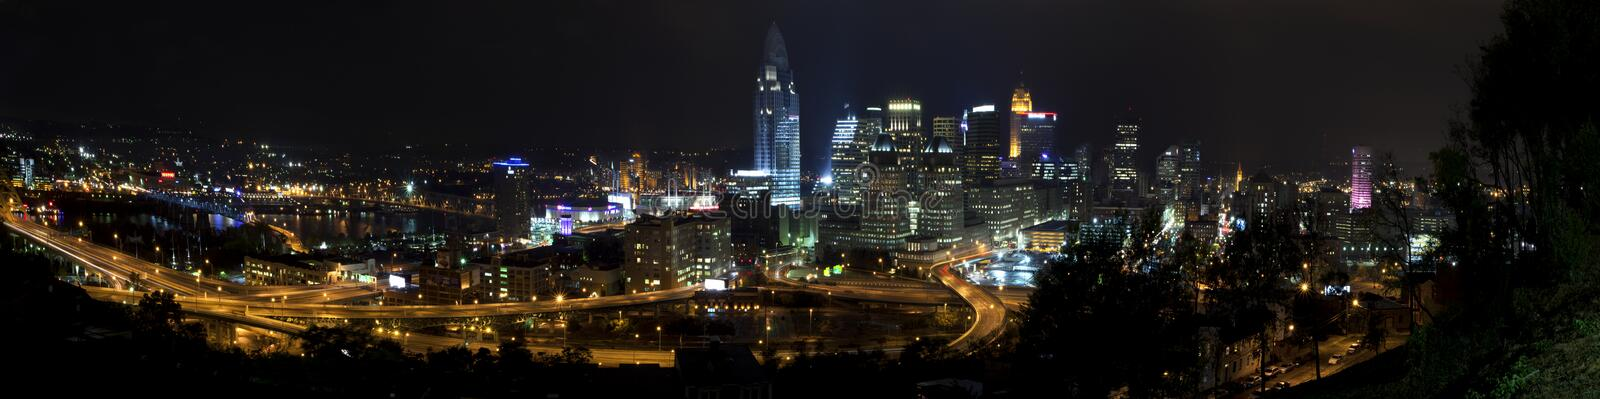 Cincinnati Ohio (panoramic) royalty free stock image